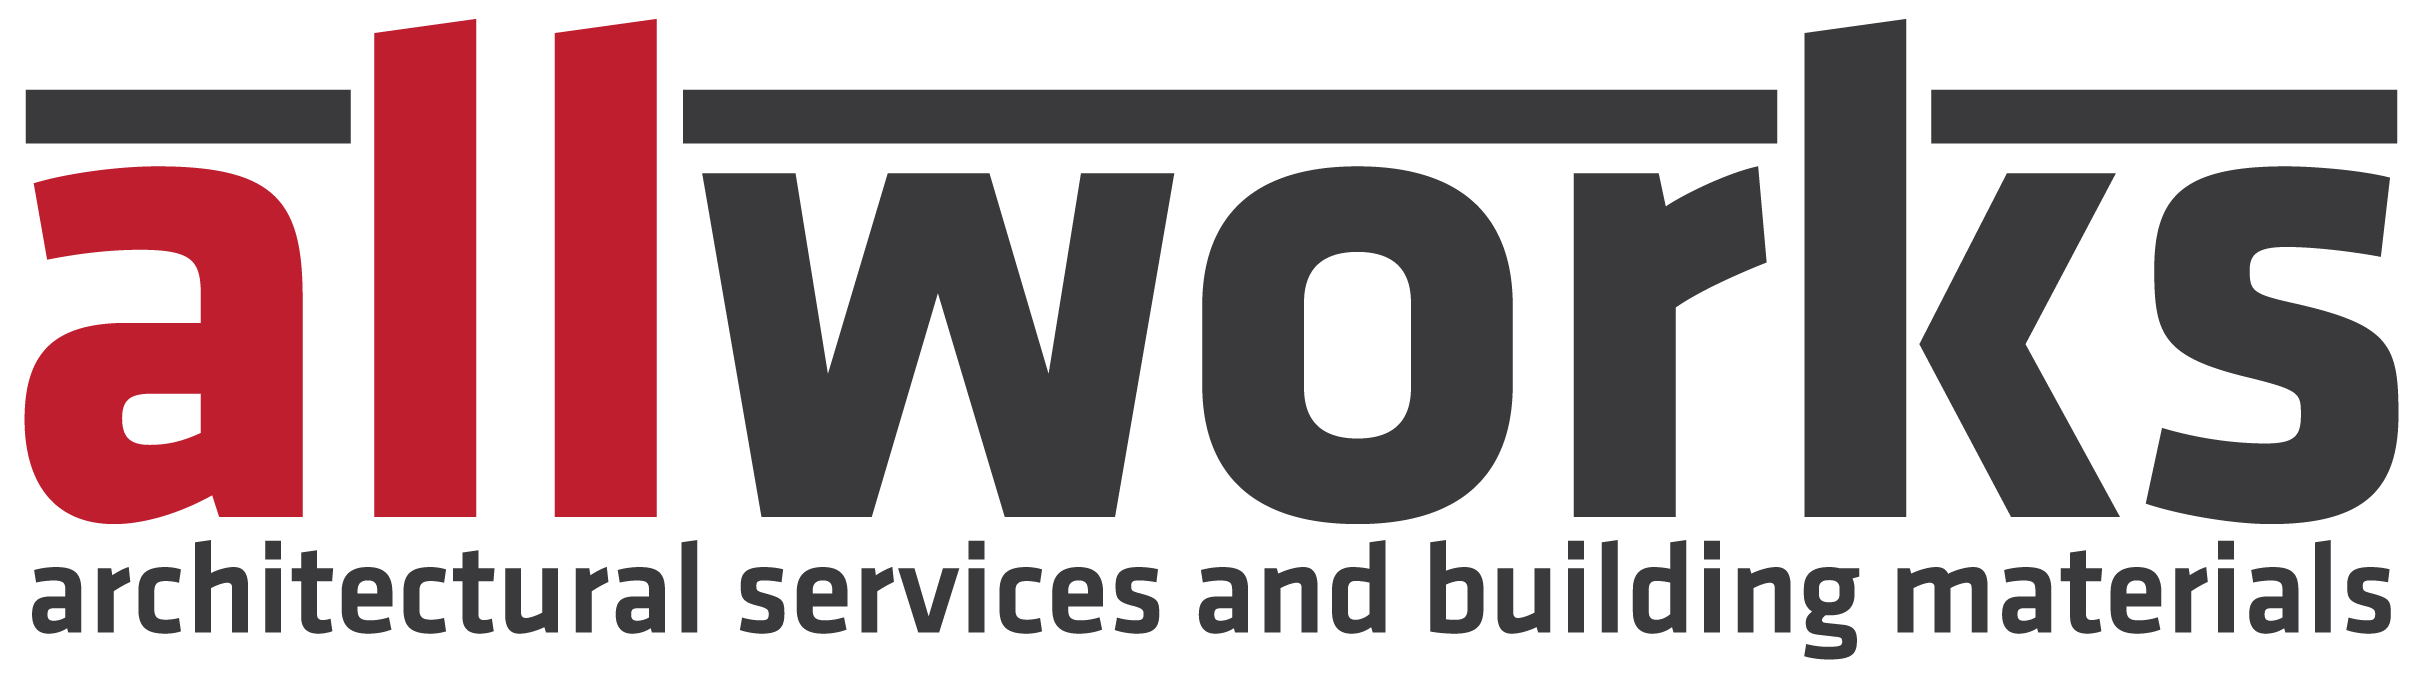 Allworks Architectural Services and Building Materials Logo